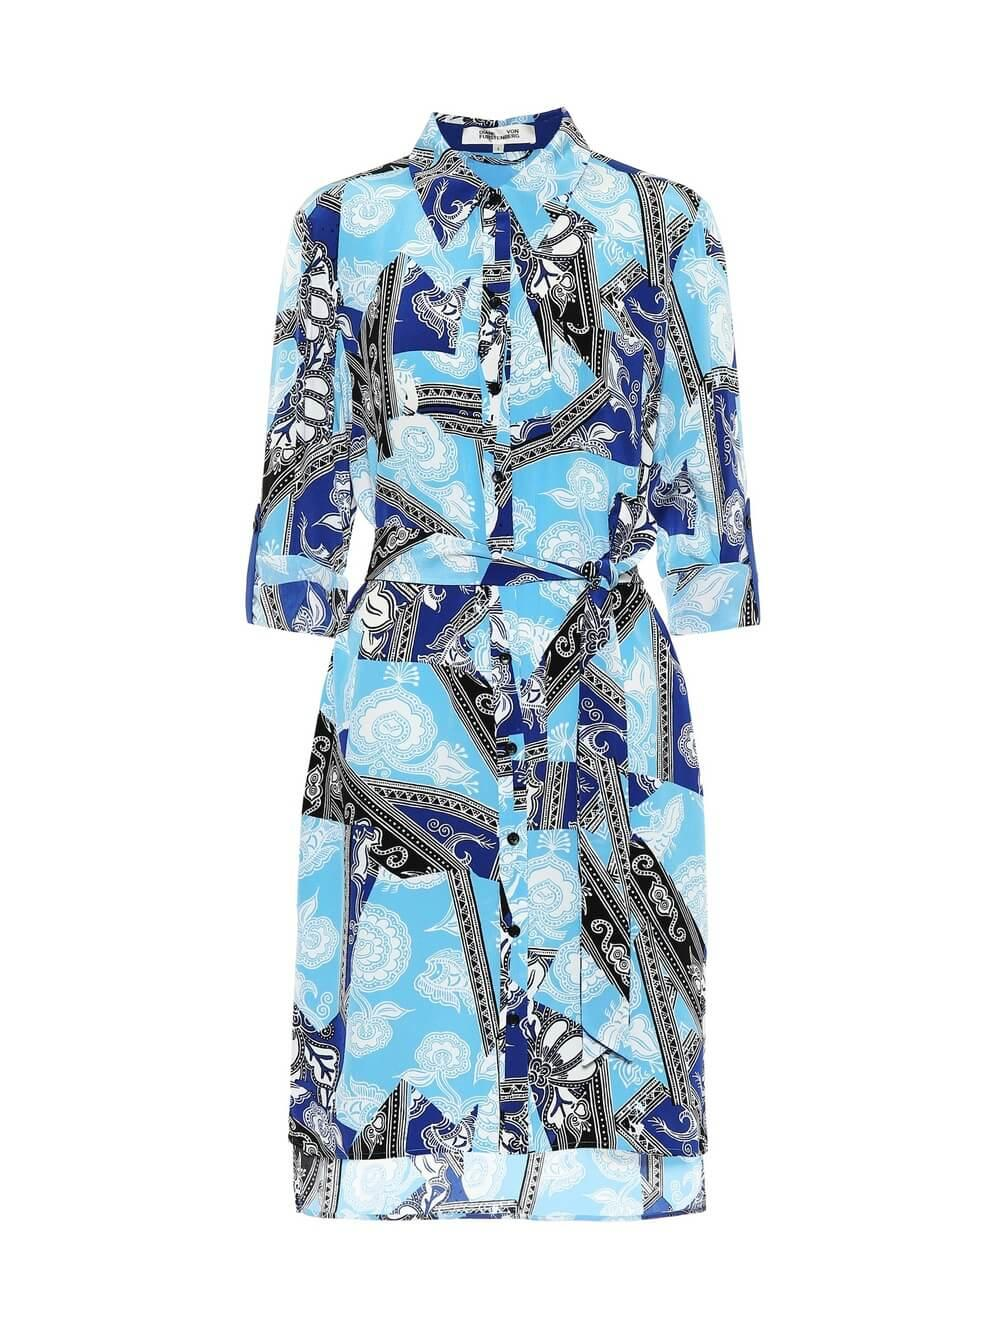 Prita Shirt Dress Item # 13960DVF